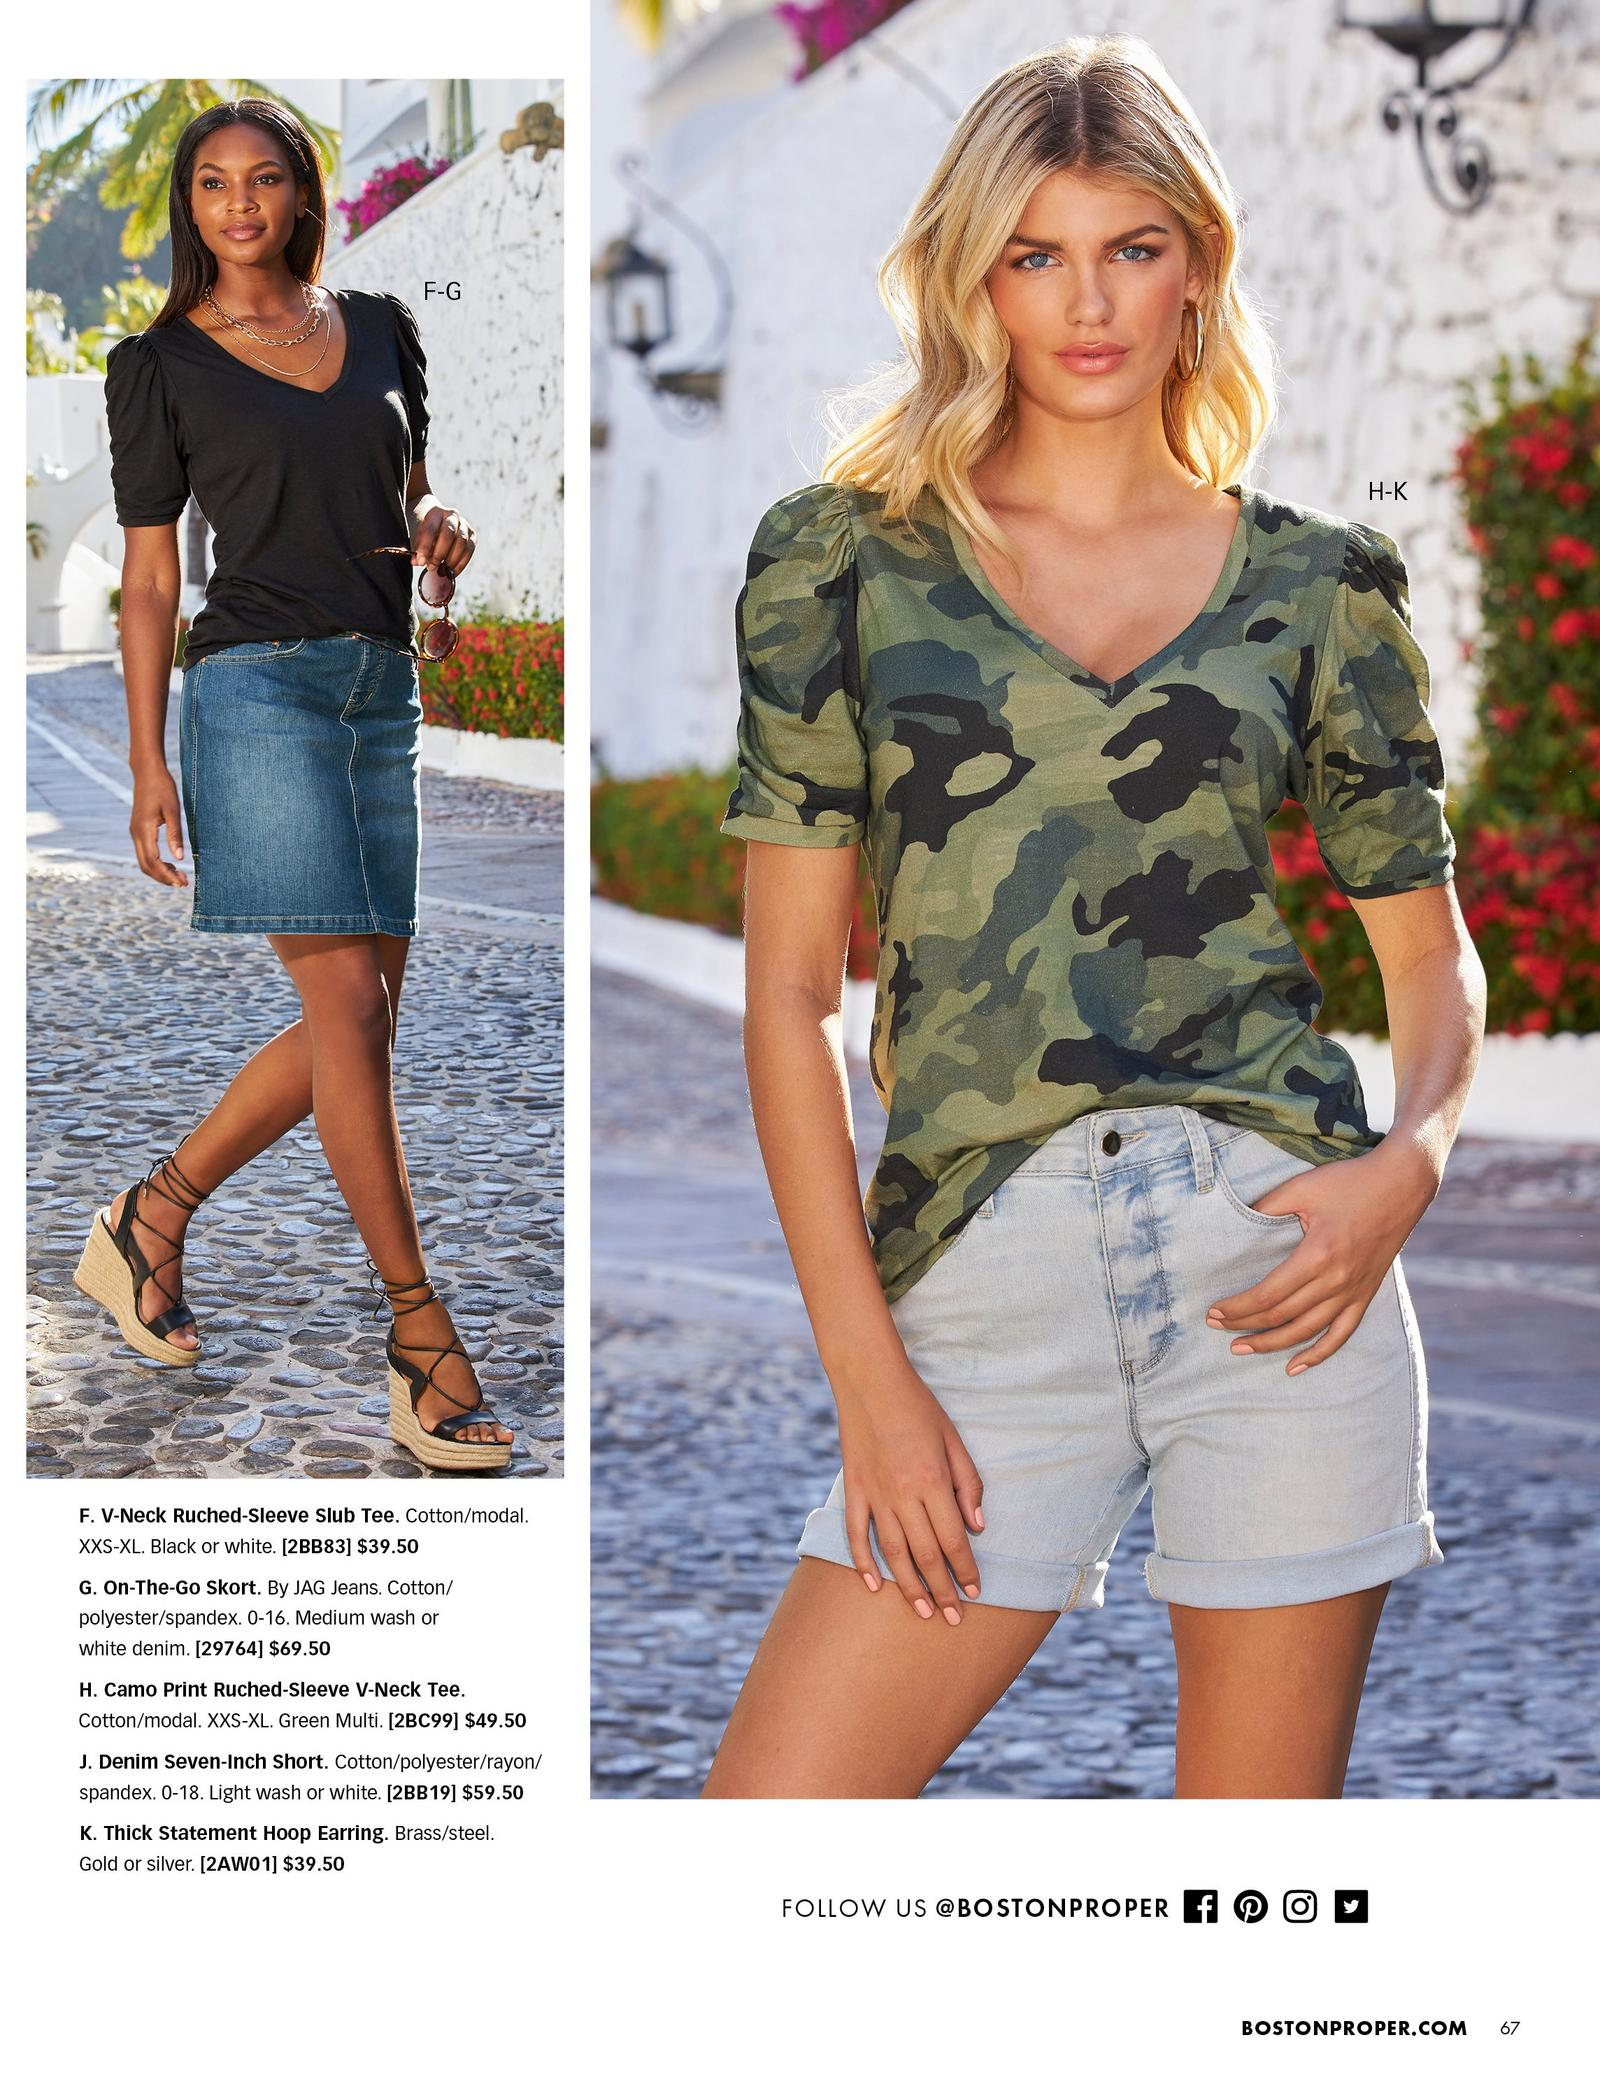 left model wearing a lack puff-sleeve top, denim skort, and black lace up wedges. right model wearing a camo puff-sleeve top, denim shorts, and gold hoop earrings.